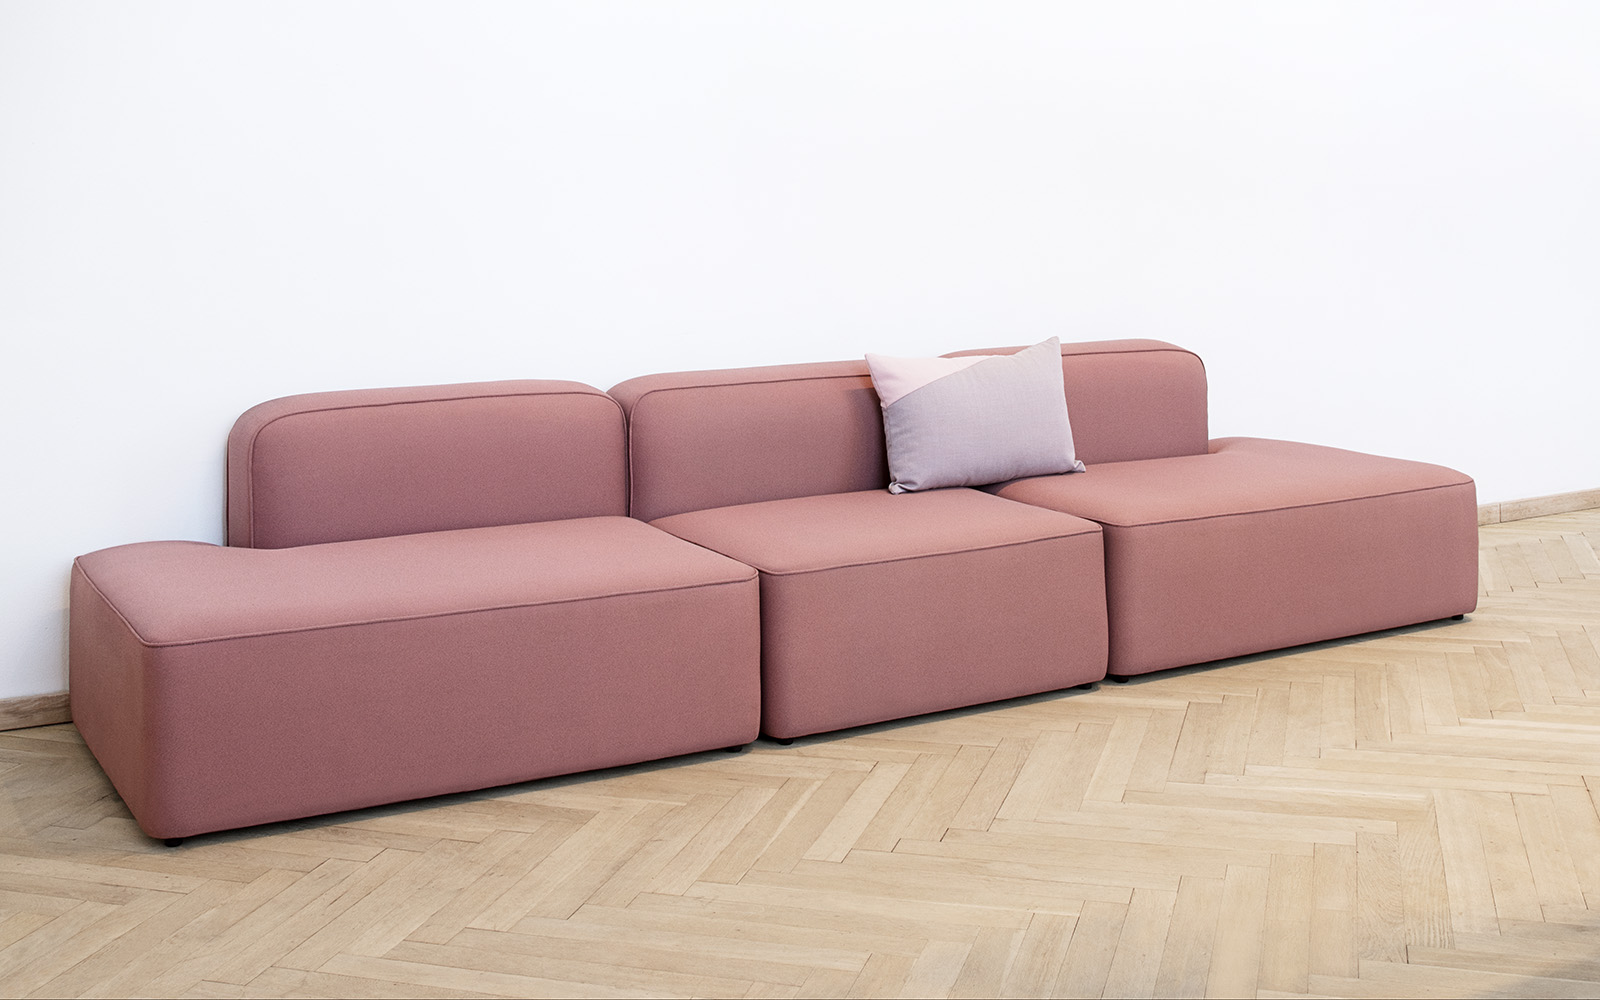 Sofa Module Rope Sofa 2 Sitzer Chaiselong Links Fame Hybrid